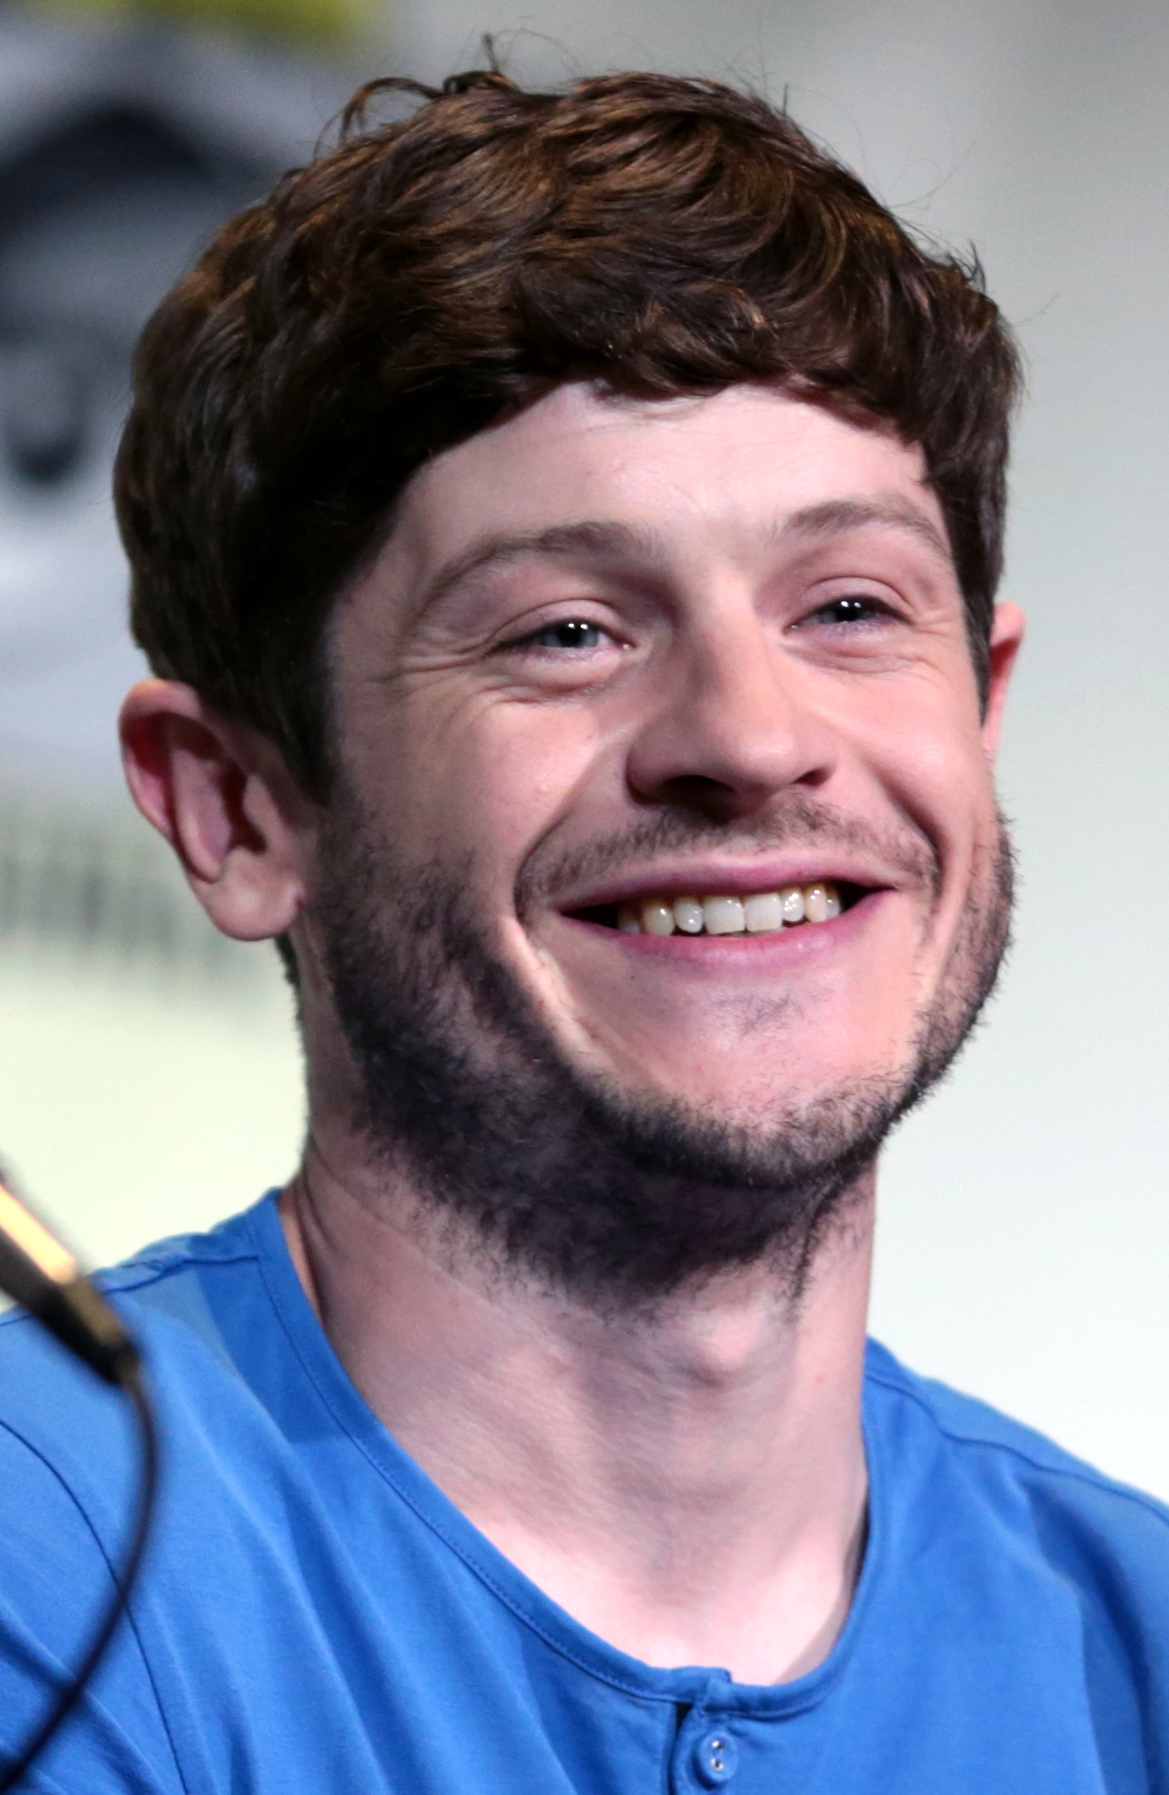 The 33-year old son of father Tomos Rheon and mother Einir Rheon Iwan Rheon in 2018 photo. Iwan Rheon earned a  million dollar salary - leaving the net worth at 3 million in 2018